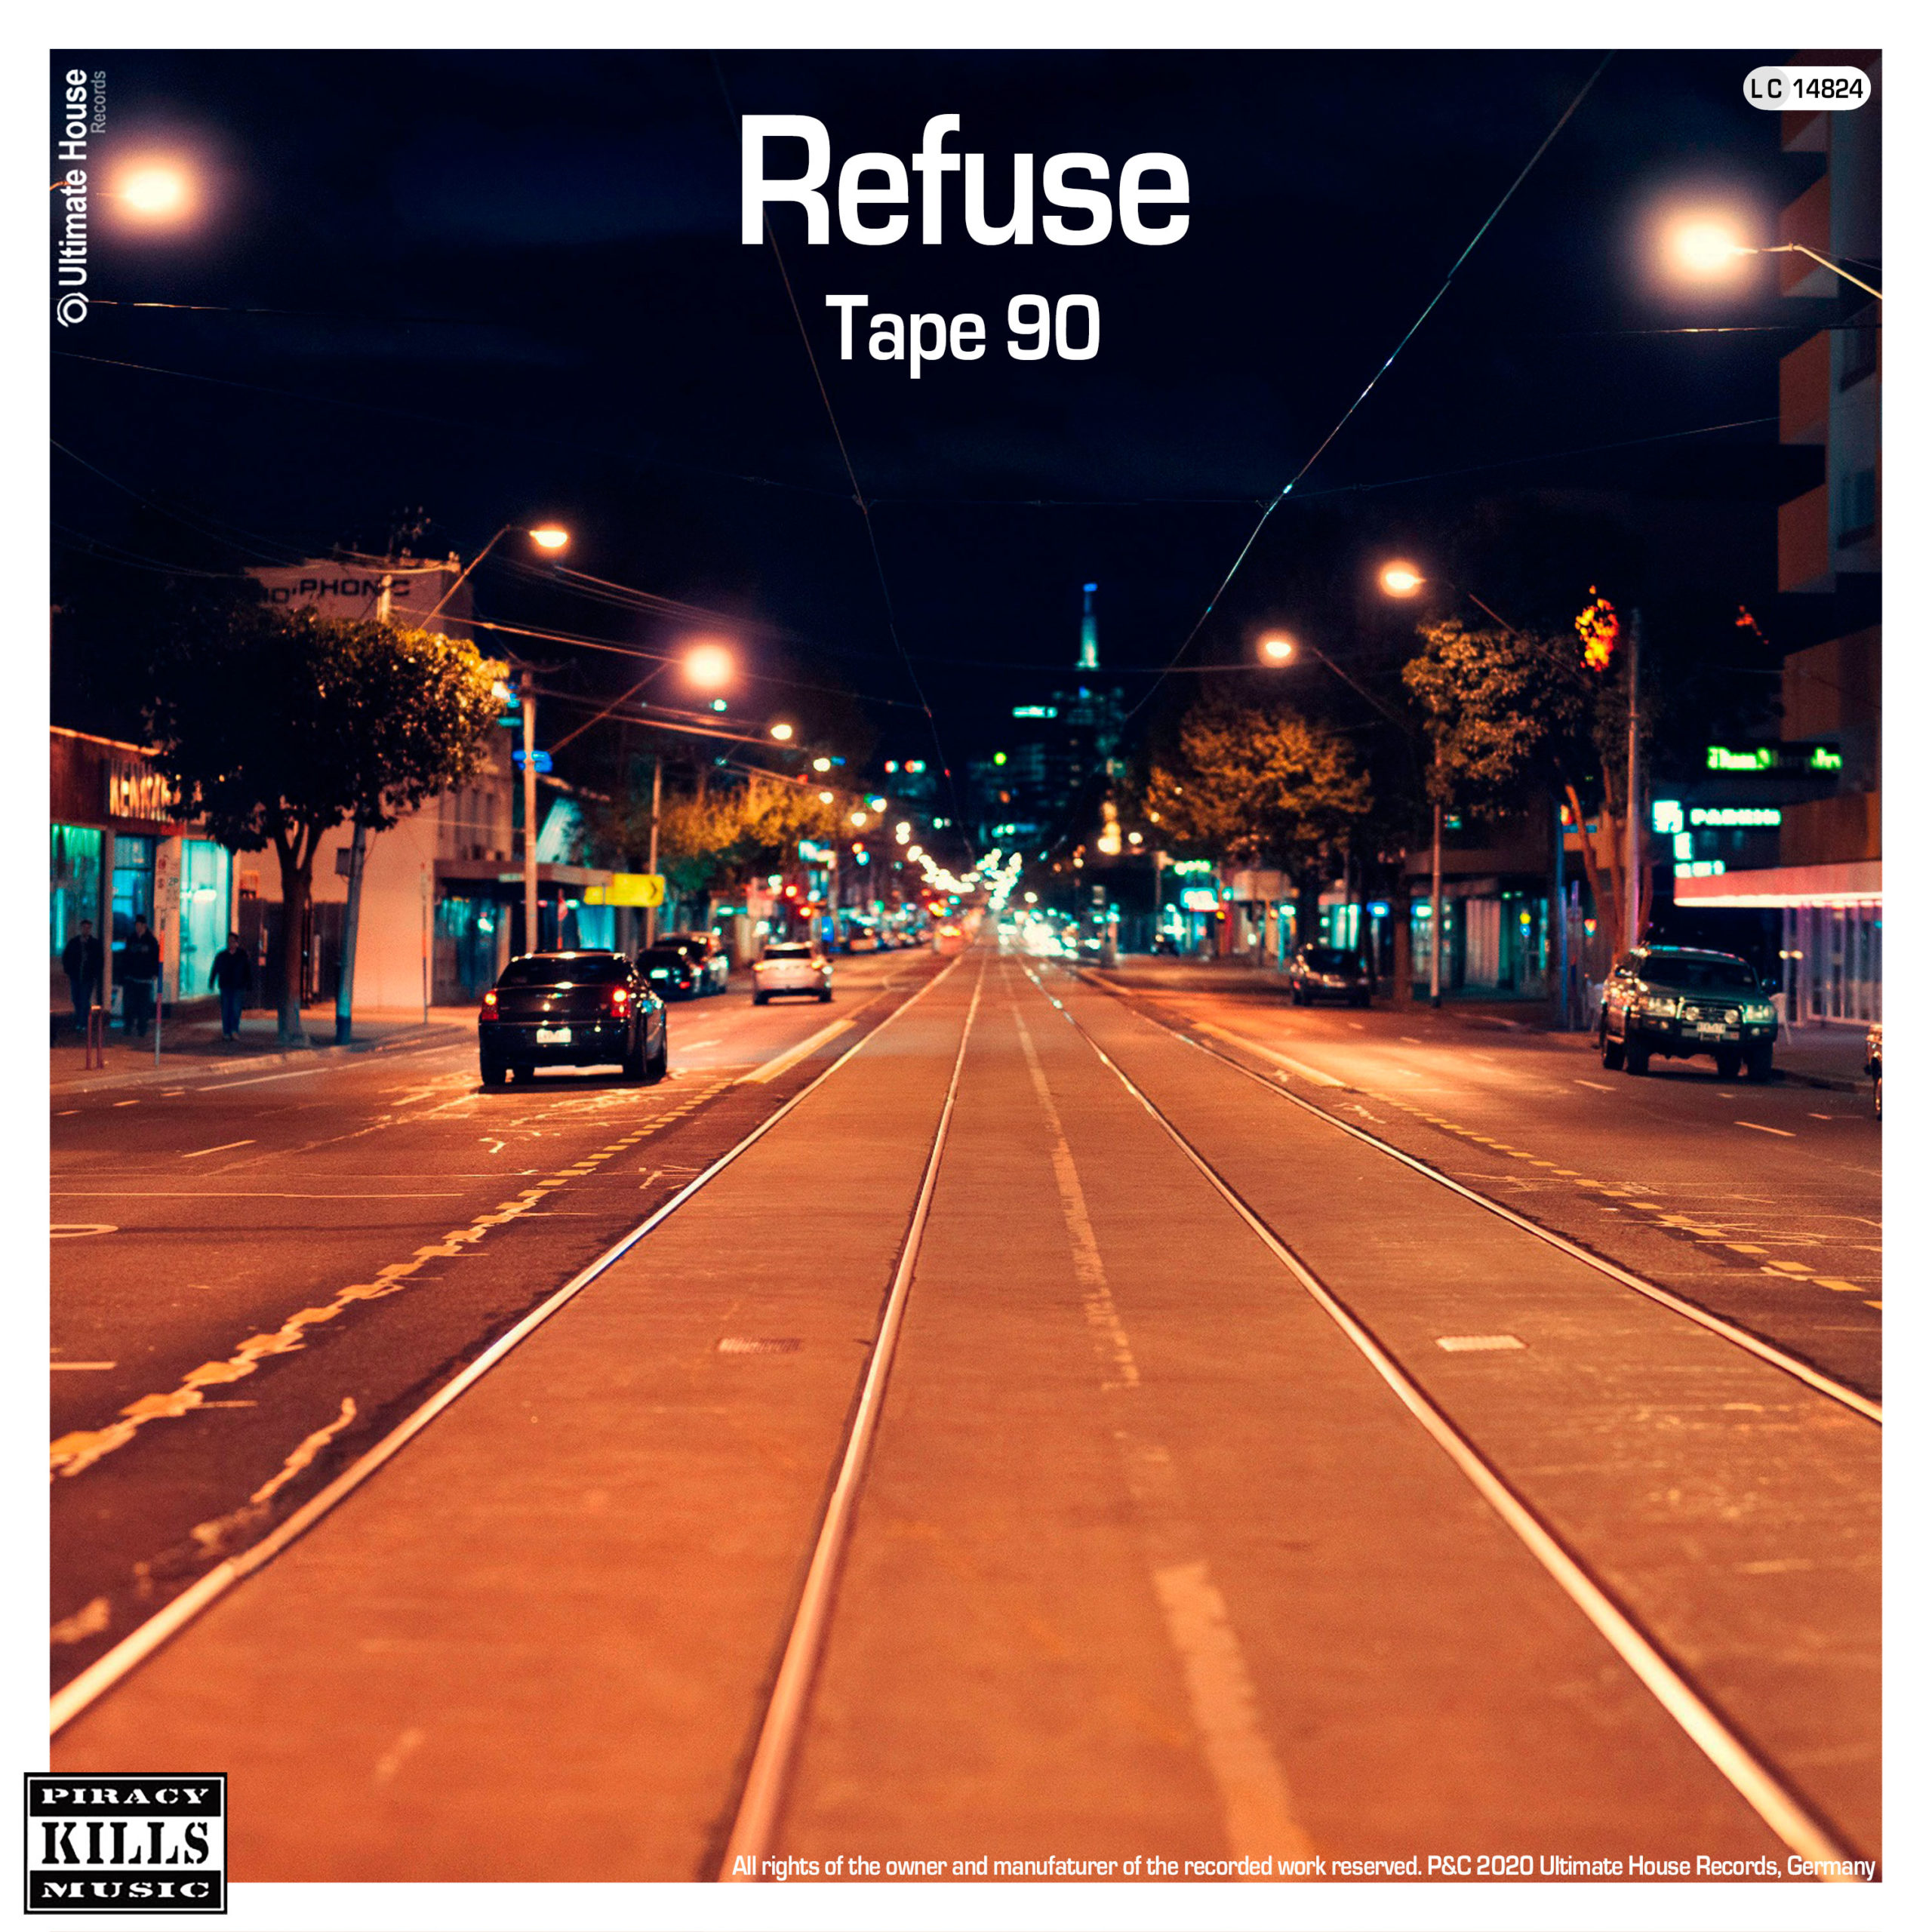 https://www.ultimate-house-records.com/wp-content/uploads/2020/04/139-Tape_90-Refuse-Cover_3000px_web-scaled.jpg